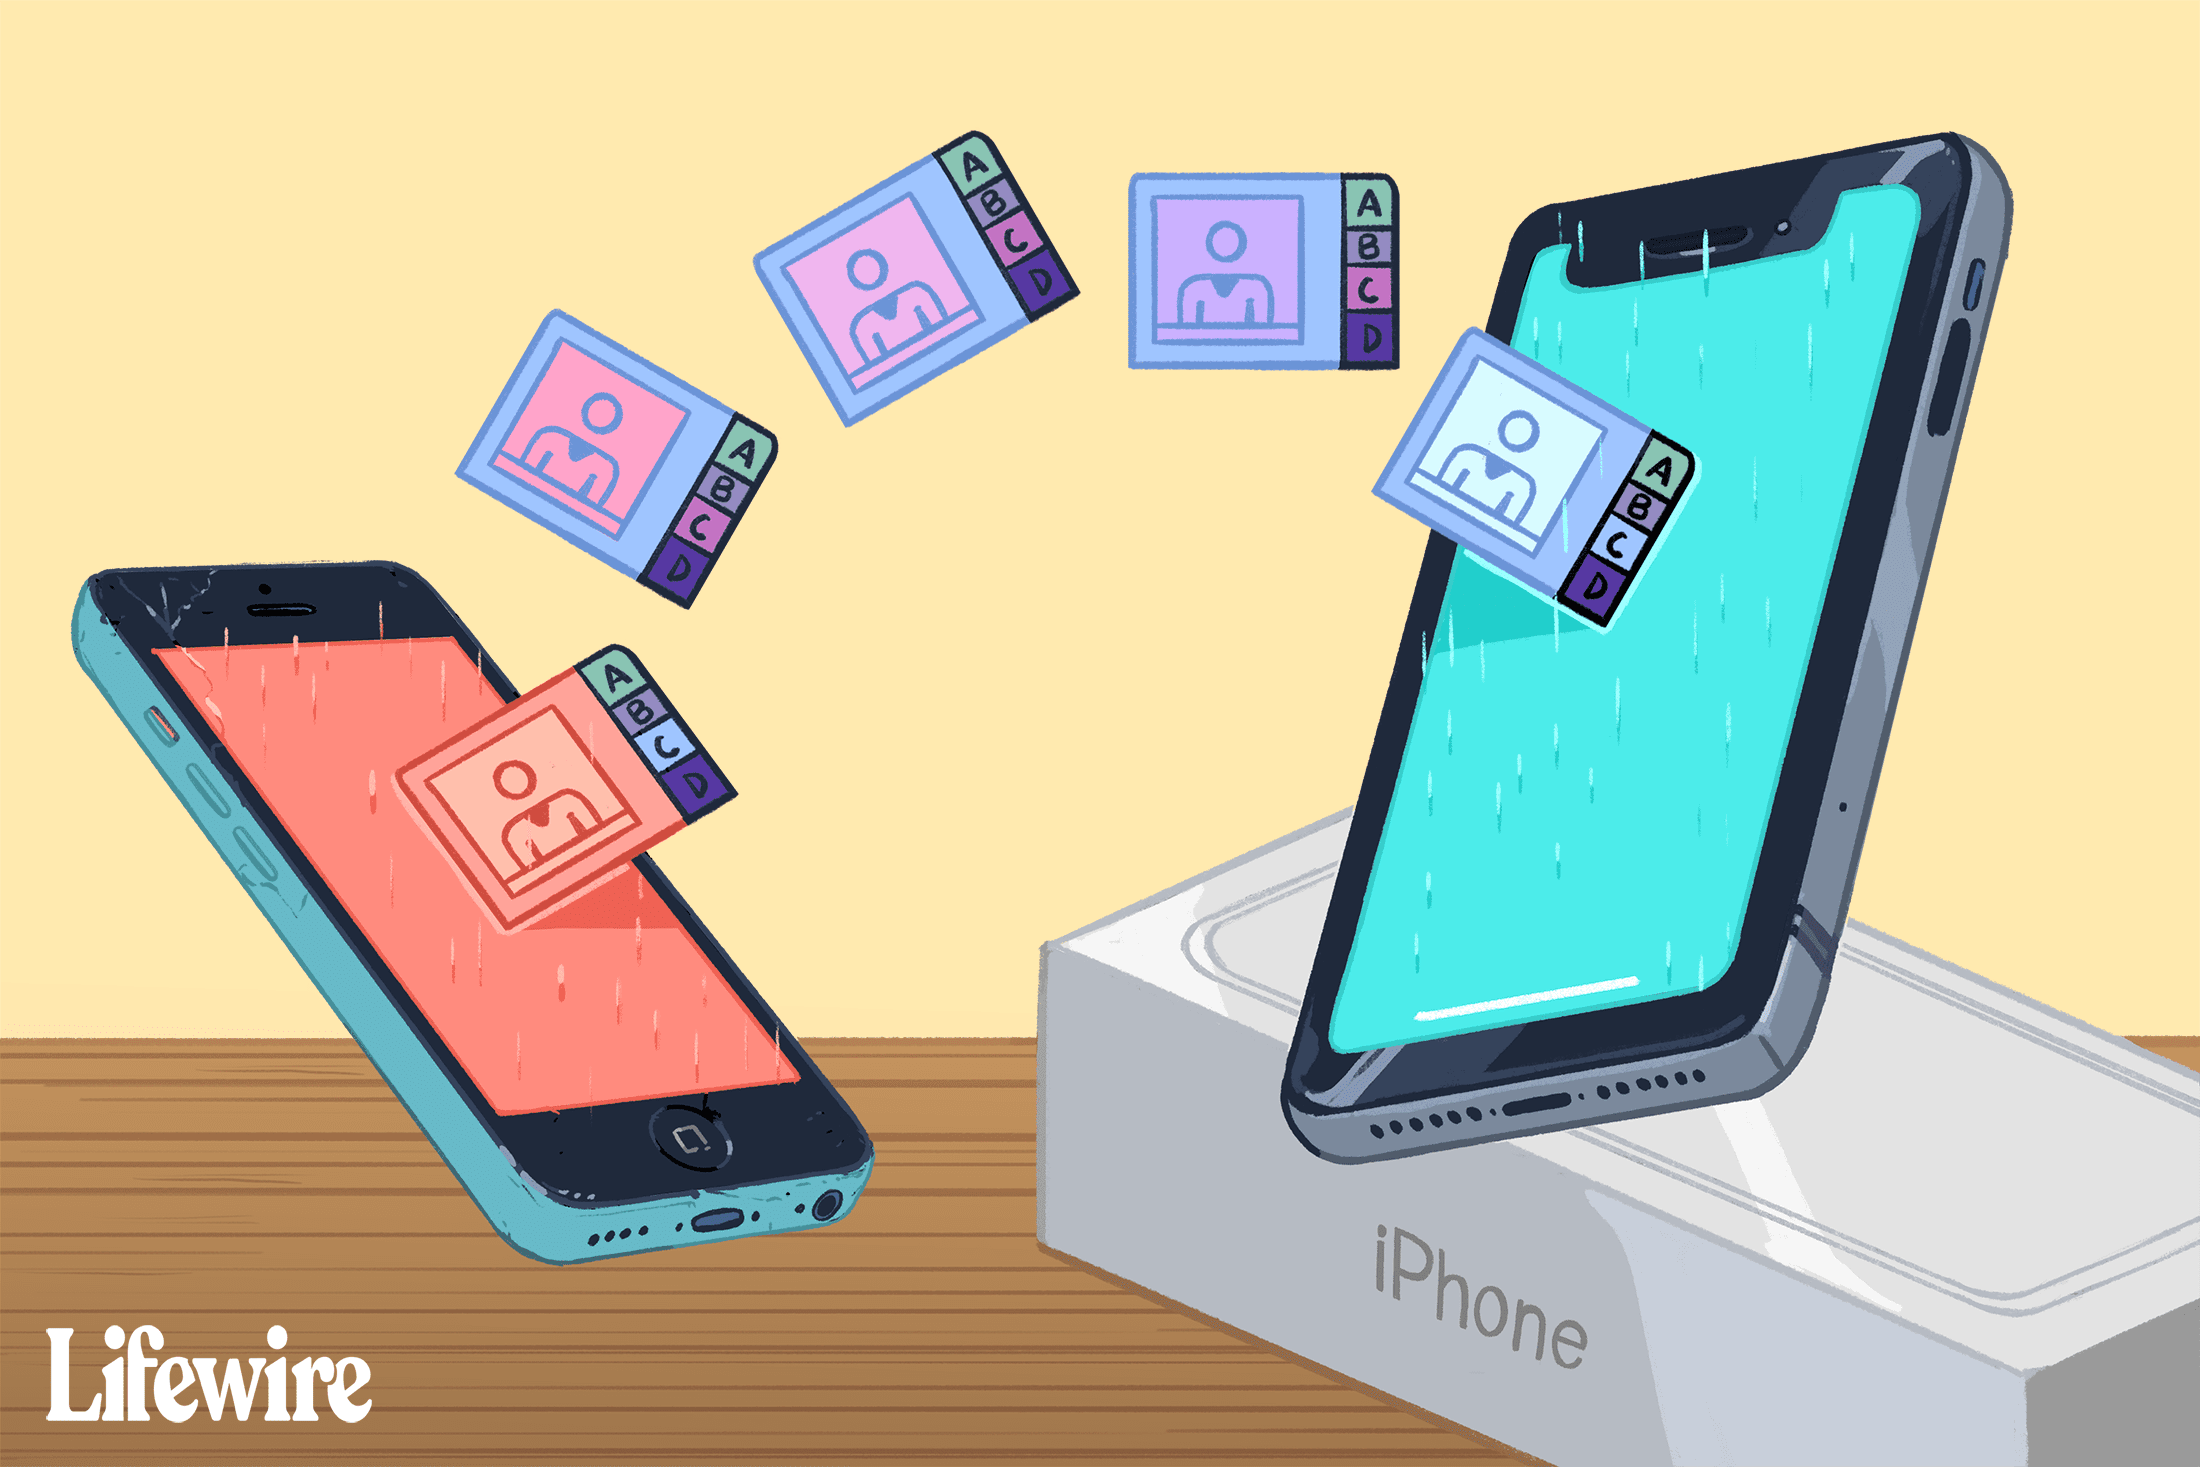 iPhones transferring contact cards between them